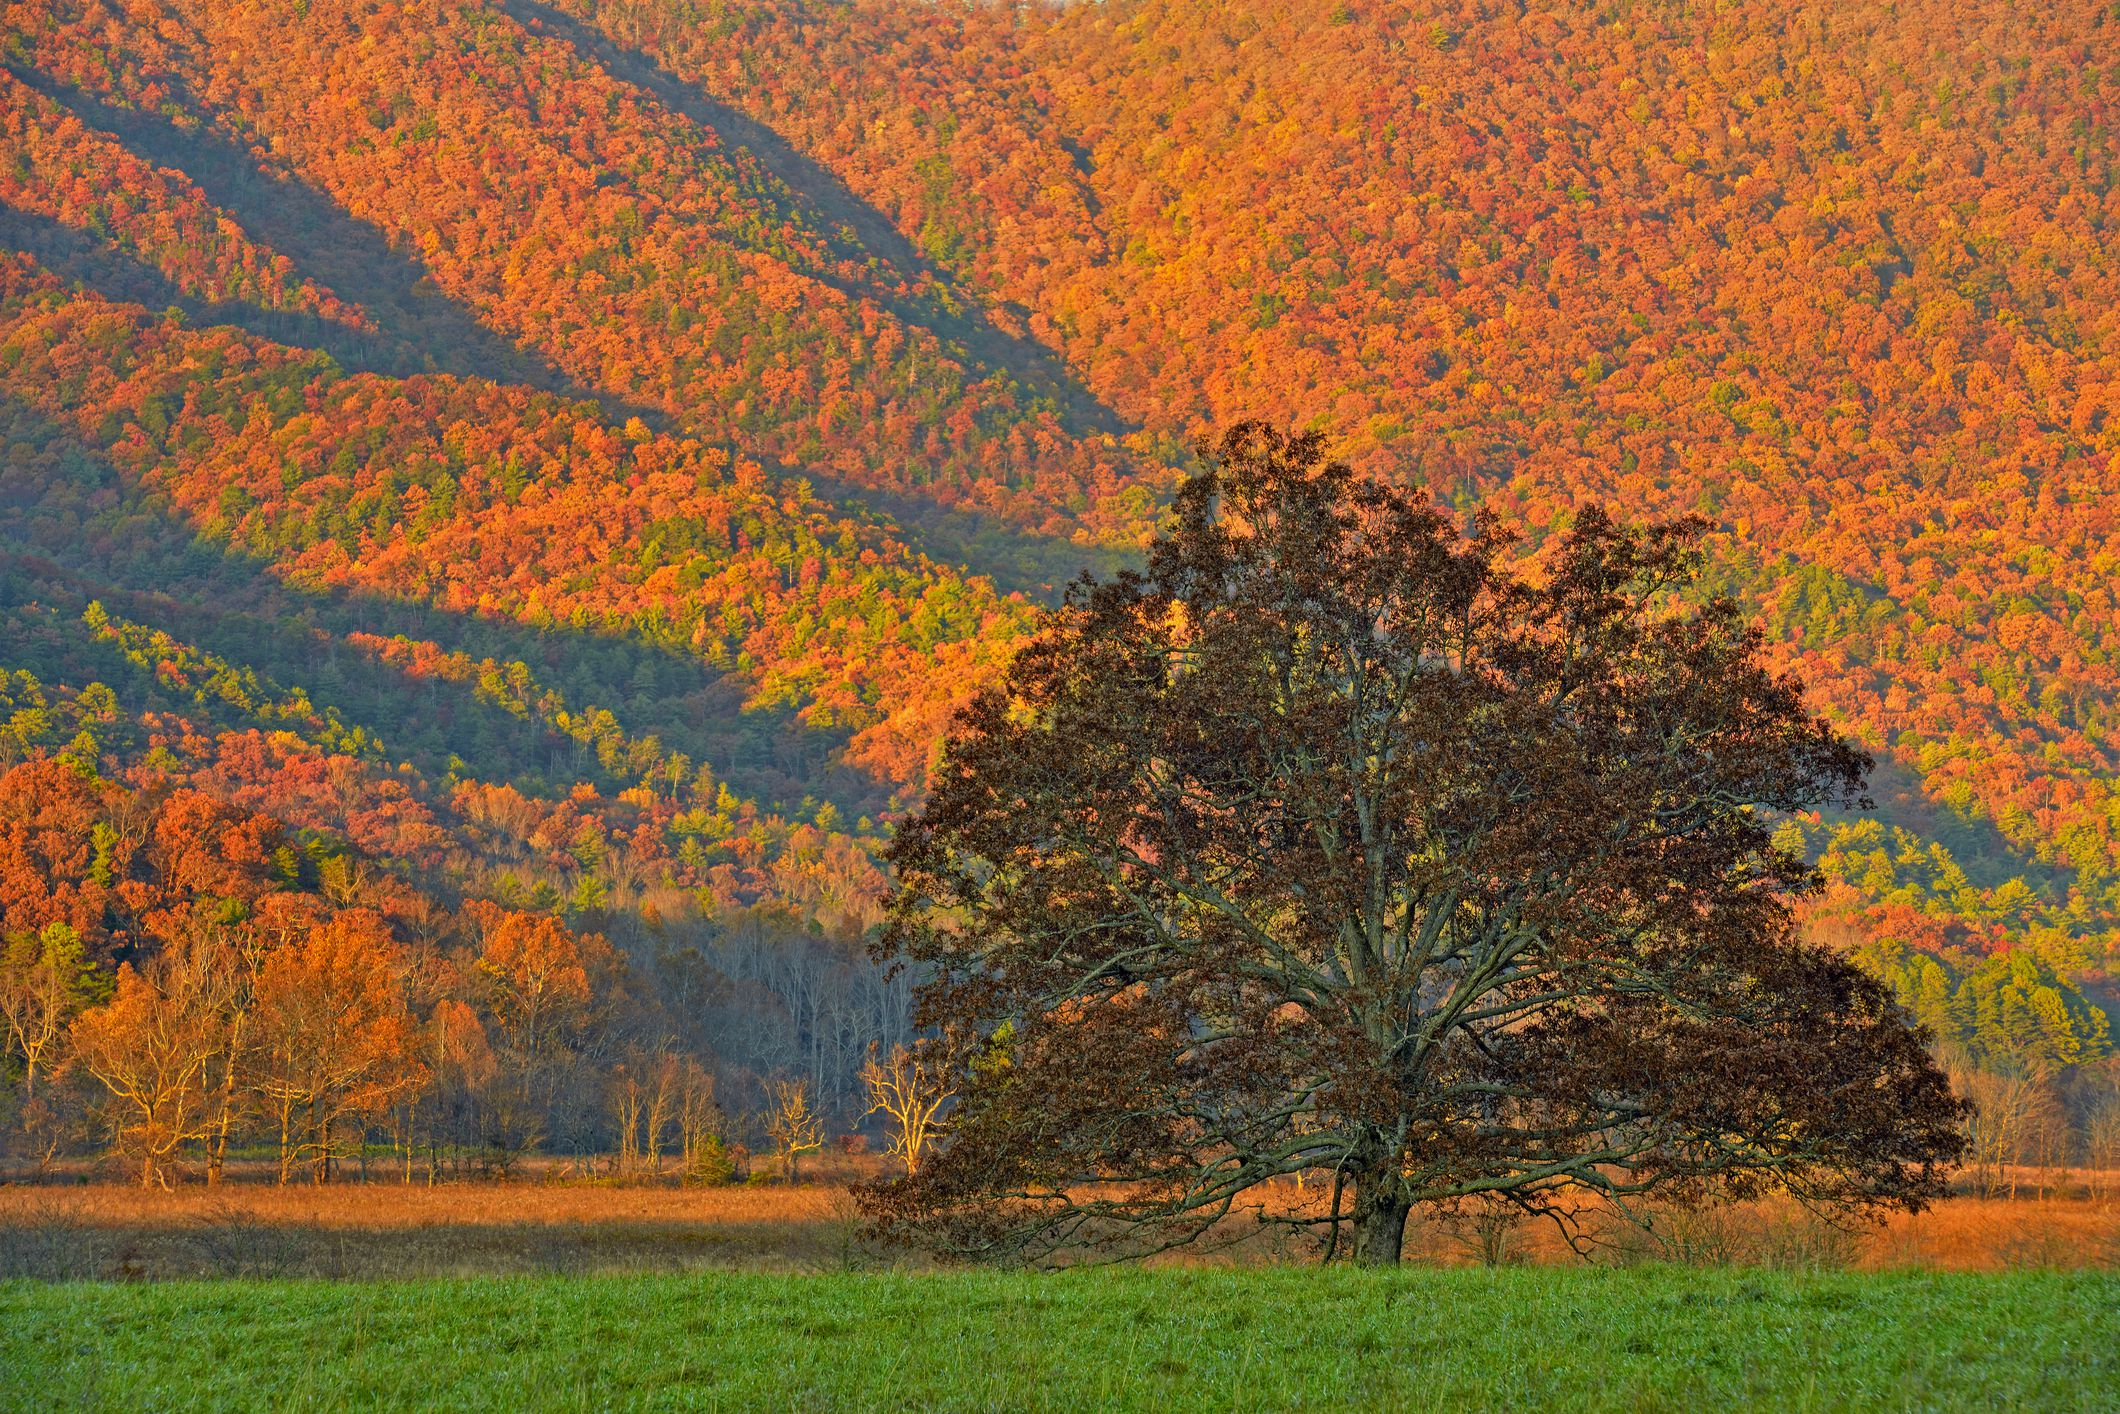 Autumn colour in Cades Cove- mountain slopes and oak tree, Great Smoky Mountains NP, Tennessee, USA